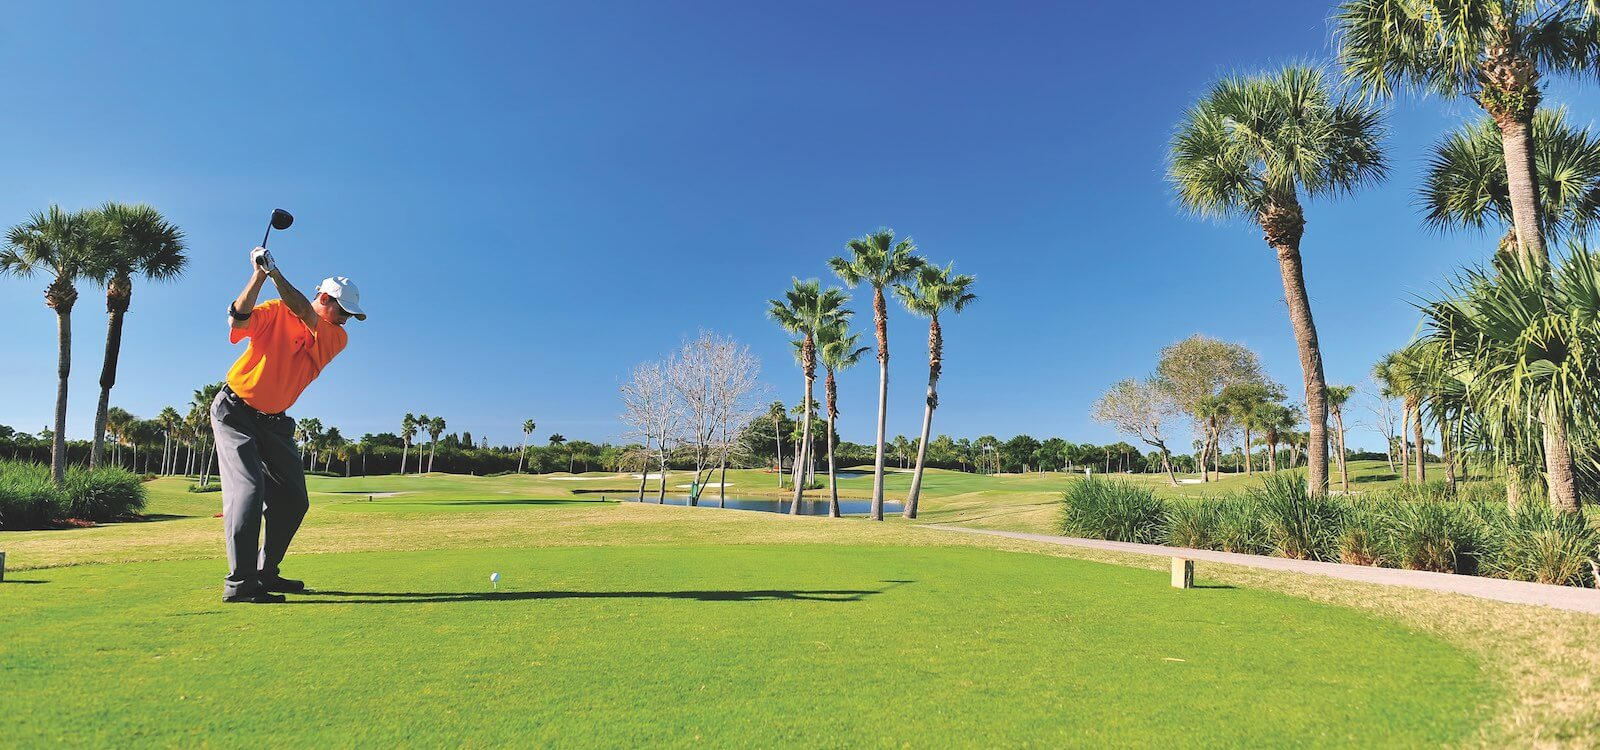 MustDo.com | Best Fort Myers, Florida places to play golf.